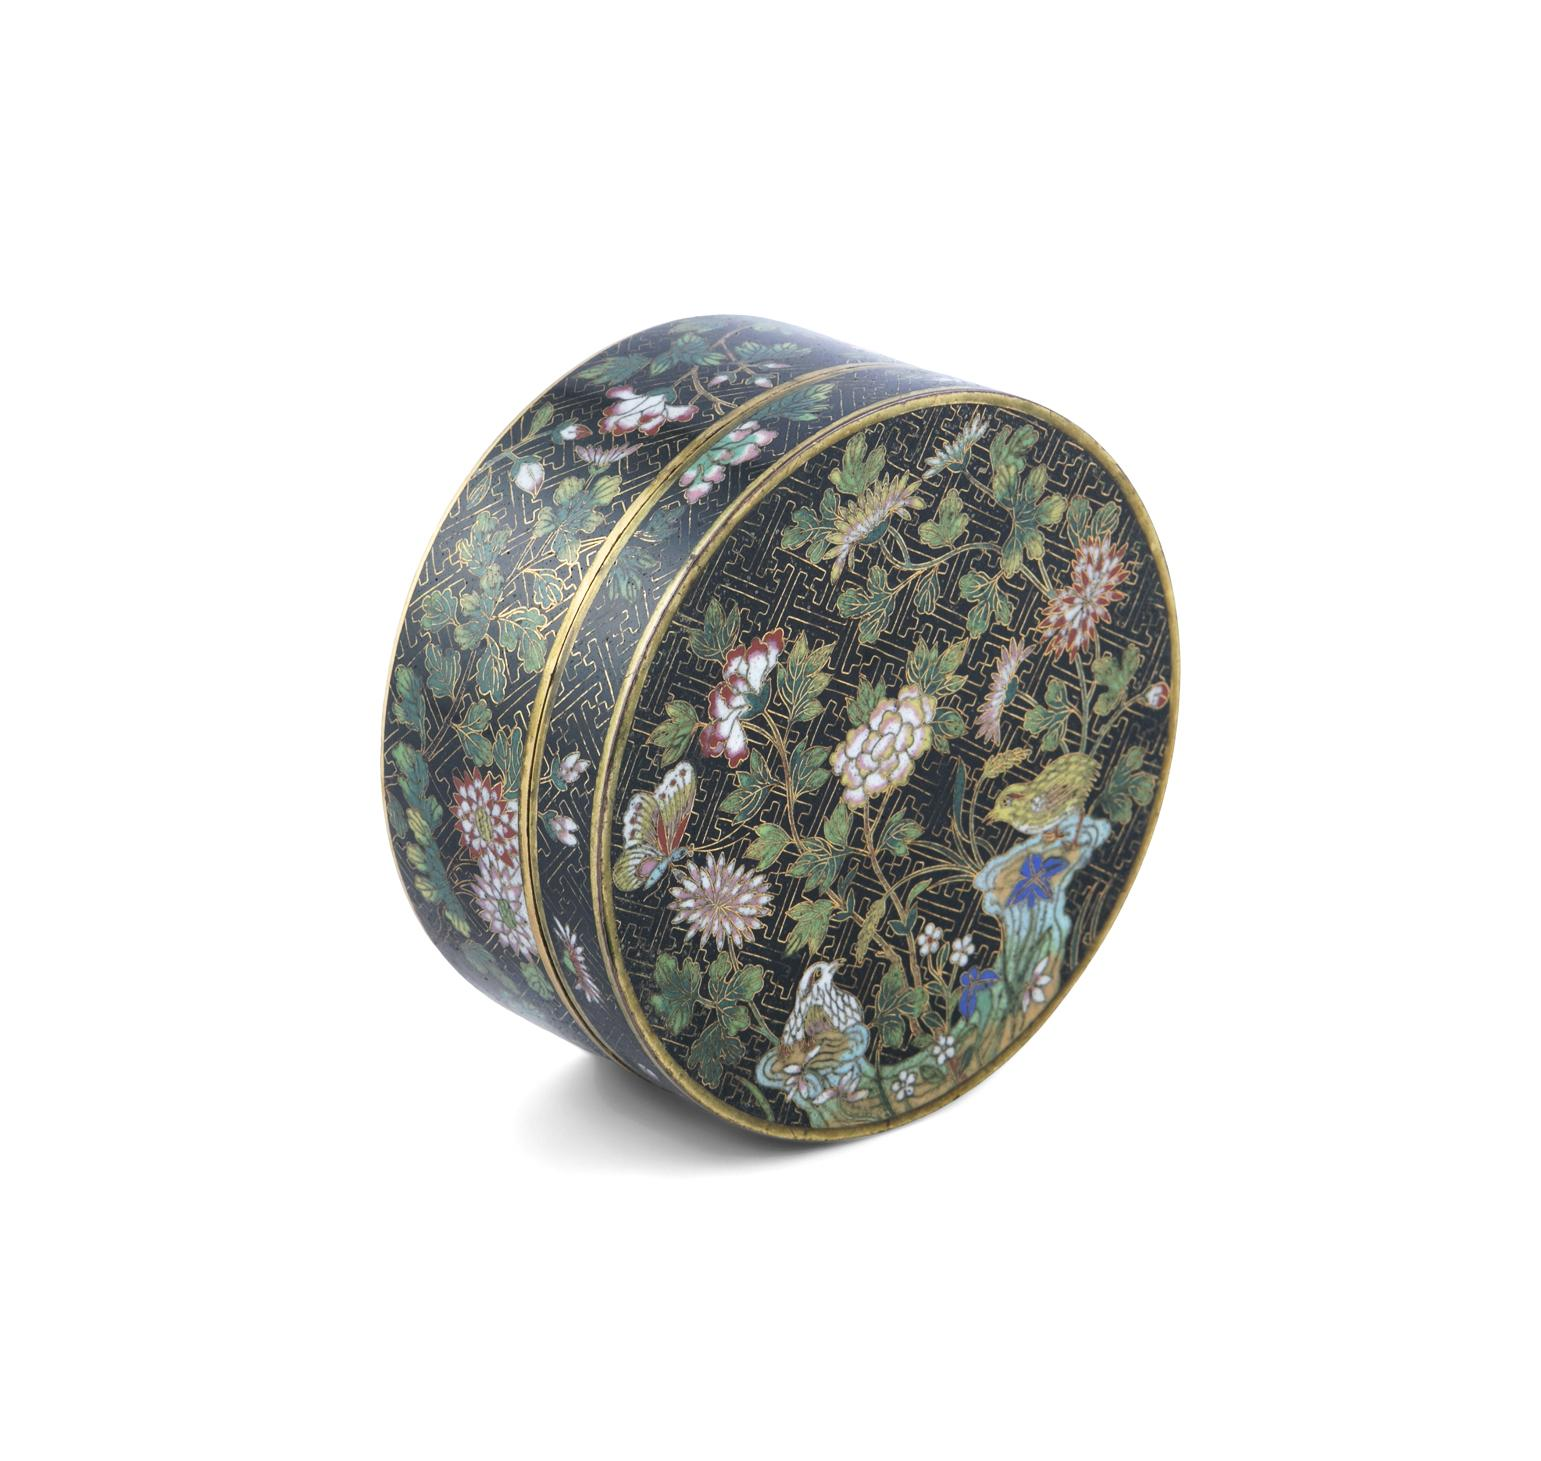 A 'FLOWER AND ROCKS' ROUND CLOISONNE BOX AND COVER China, Late Qing to Republican / Minguo period